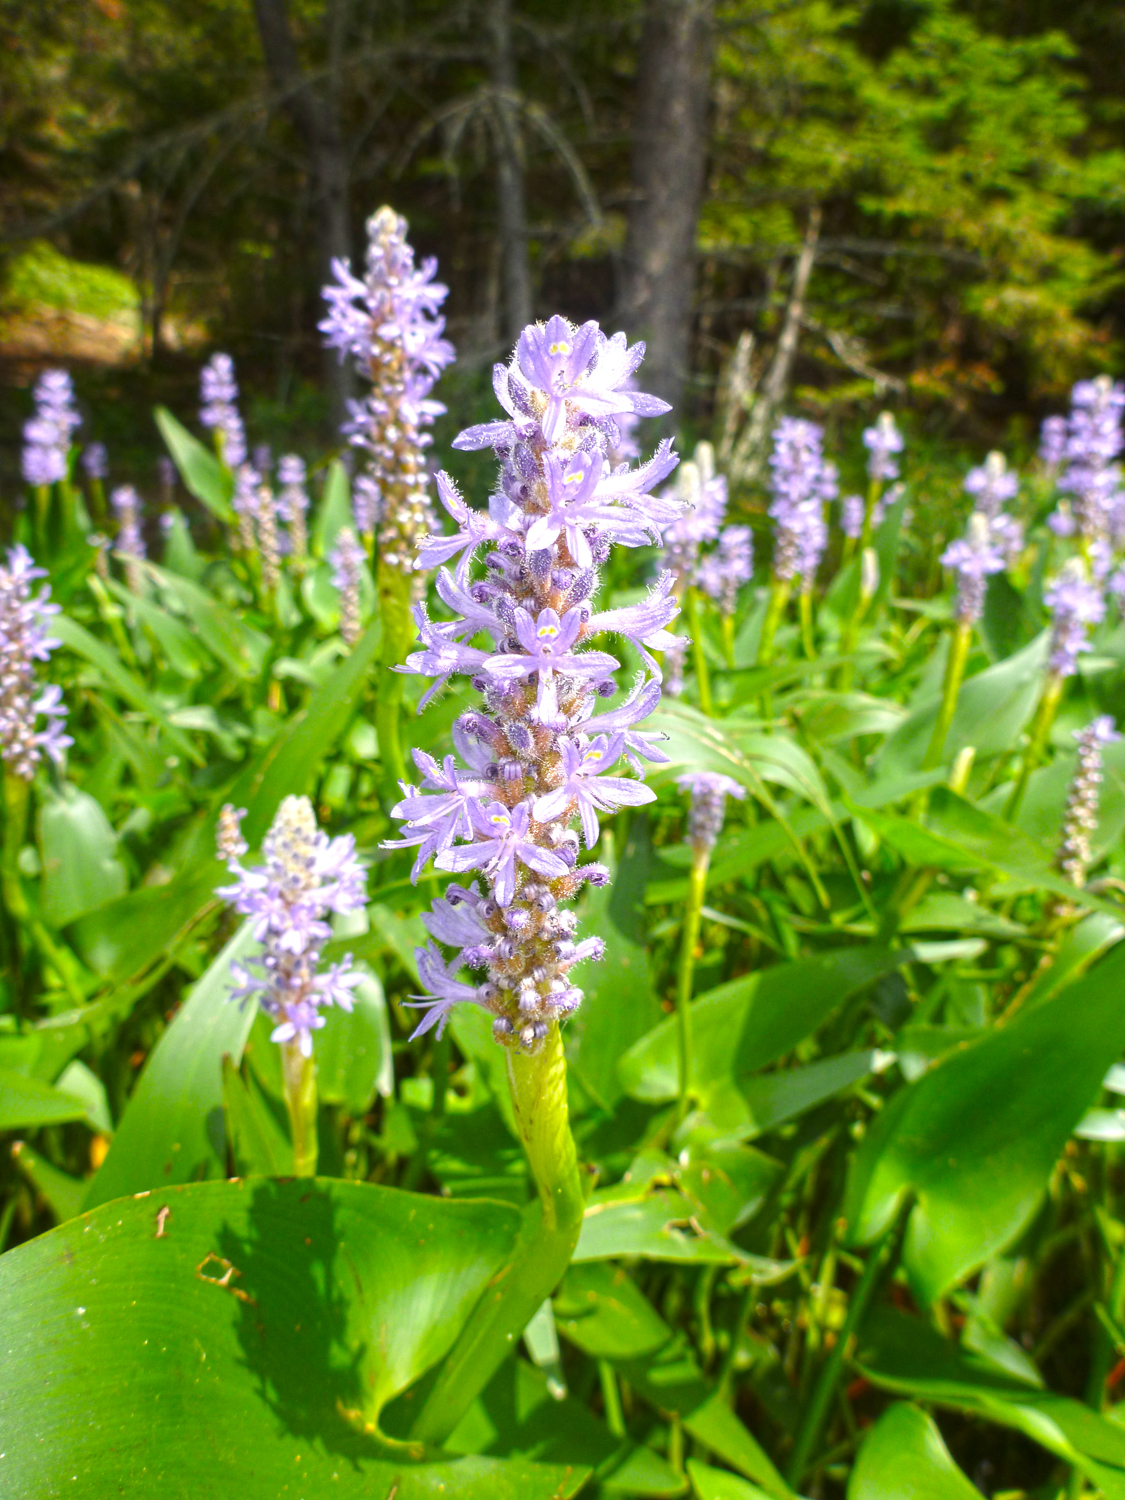 Pickerel weed blossoms added color to the shallows of County Line Flow.  Alan Mapes